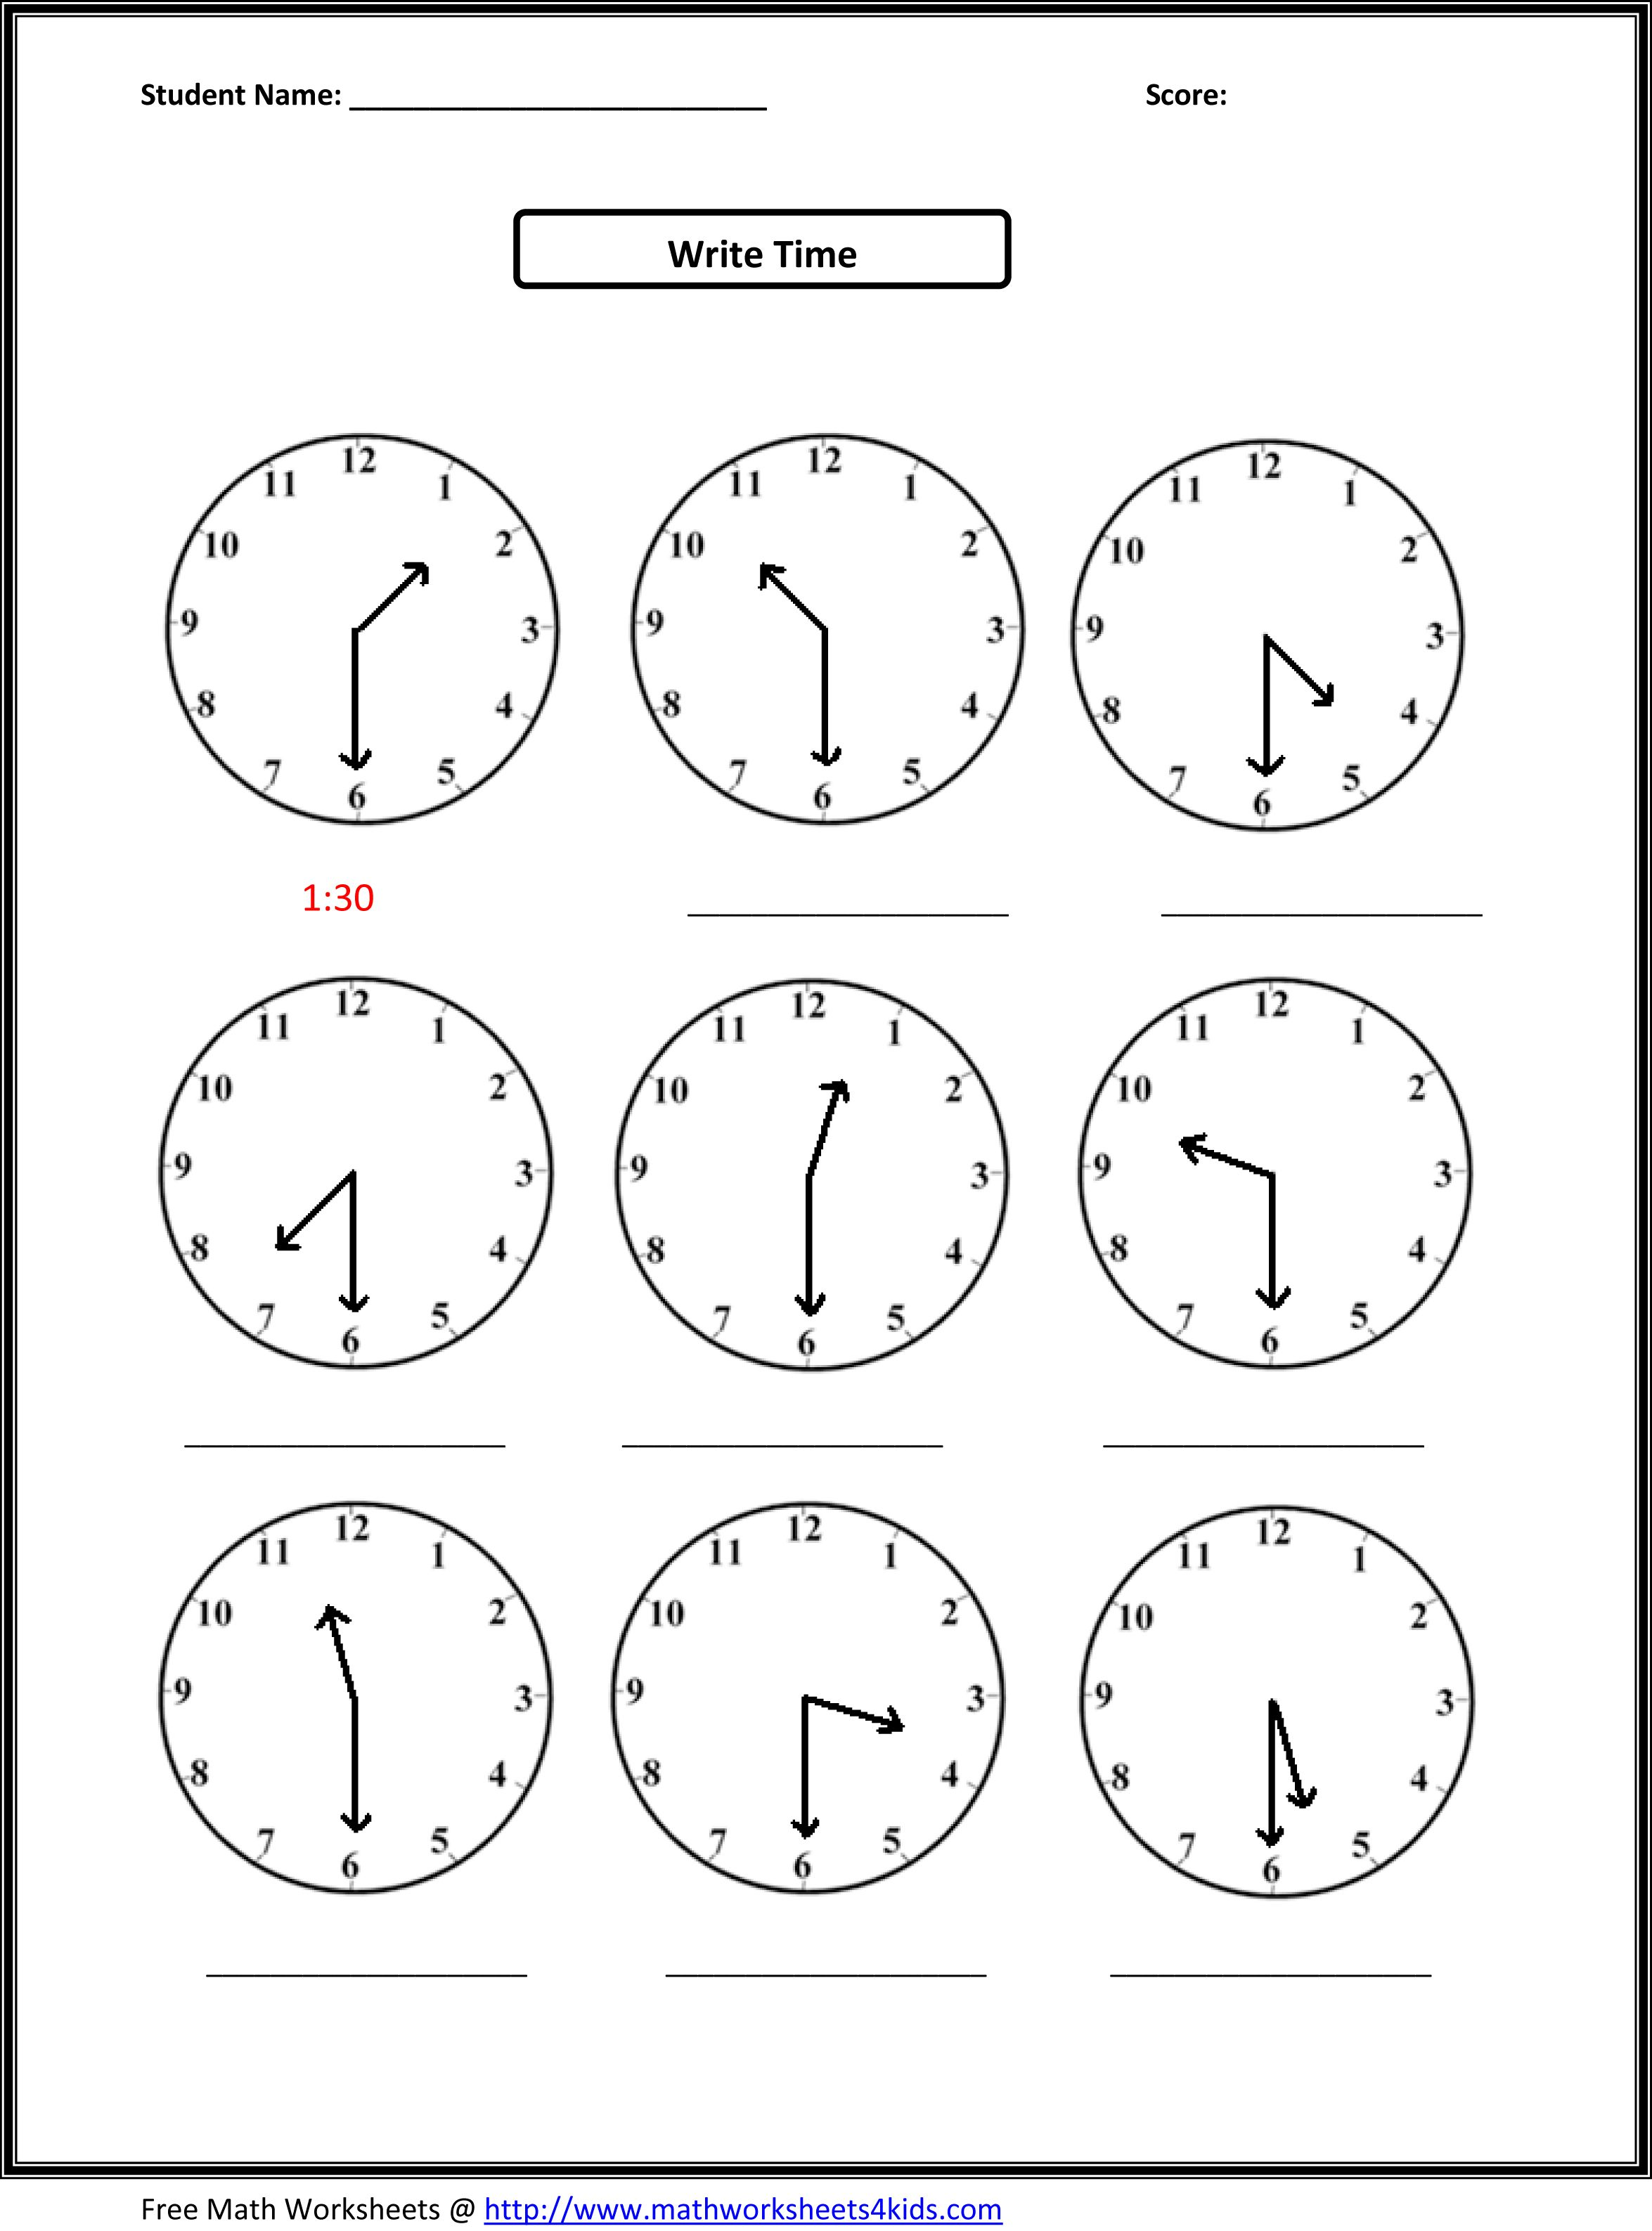 Proatmealus  Ravishing Worksheet On Time For Grade   Reocurent With Lovely Free Printable Telling Time Worksheets Nd Grade  Reocurent With Awesome Short Comprehension Worksheets Also Measurement Worksheets For Grade  In Addition Grade  Math Worksheets Canada And Addition Worksheets Printable Free As Well As At Family Words Worksheets Additionally Worksheets On Angles For Grade  From Reocurentcom With Proatmealus  Lovely Worksheet On Time For Grade   Reocurent With Awesome Free Printable Telling Time Worksheets Nd Grade  Reocurent And Ravishing Short Comprehension Worksheets Also Measurement Worksheets For Grade  In Addition Grade  Math Worksheets Canada From Reocurentcom